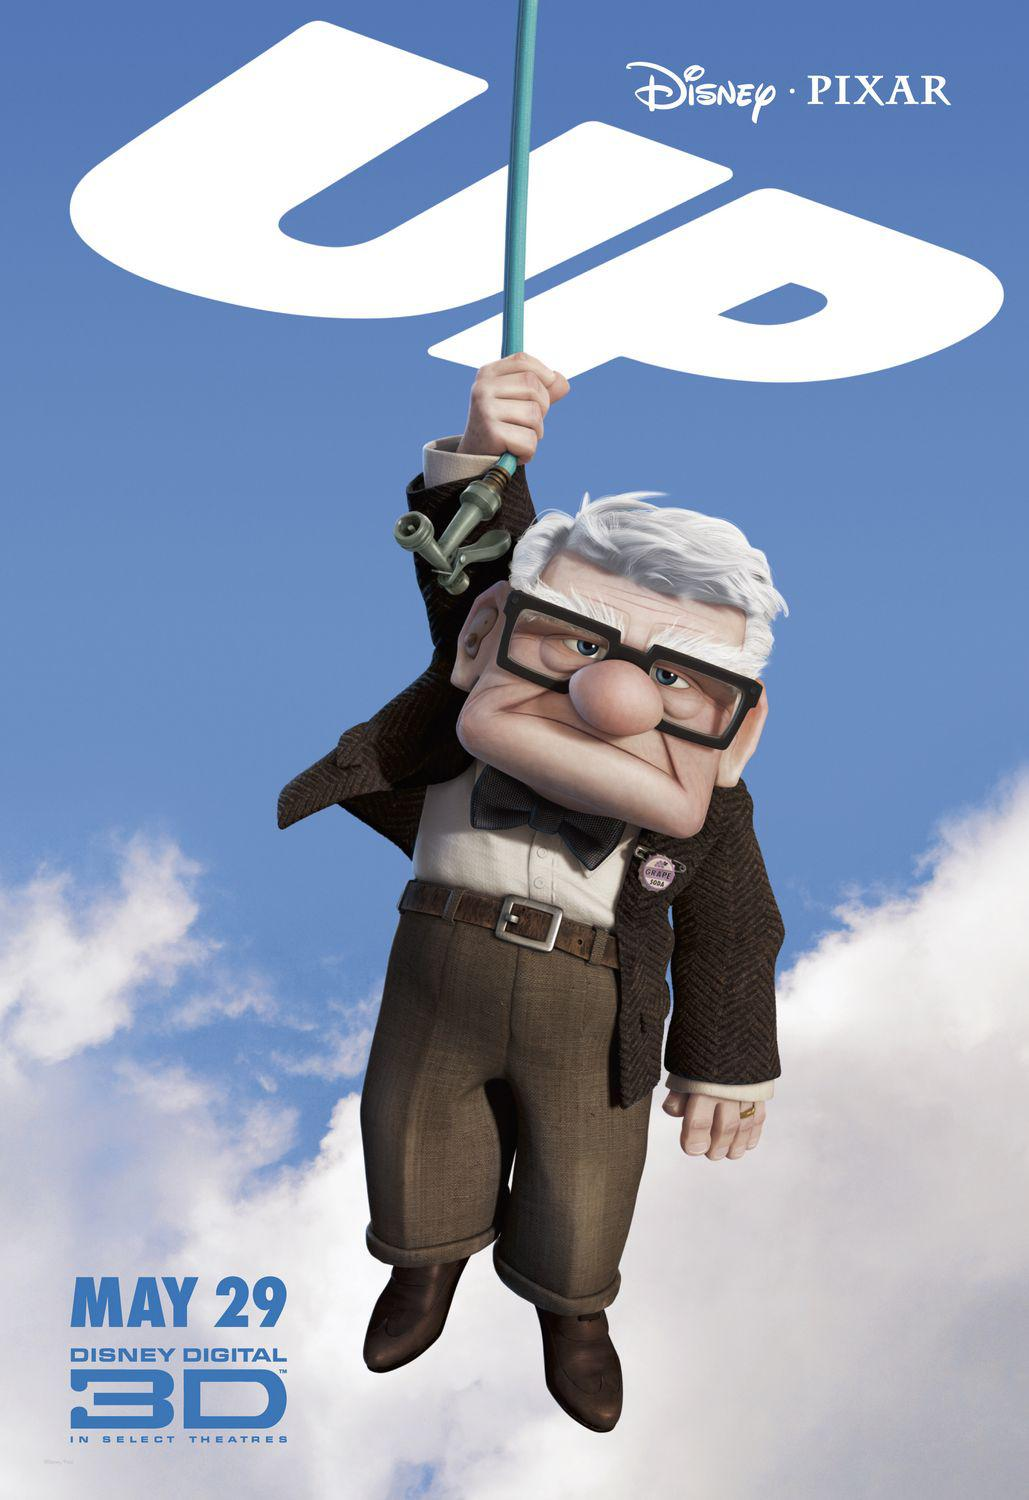 UP - Disney Pixar animated film poster - Carl Fredricksen